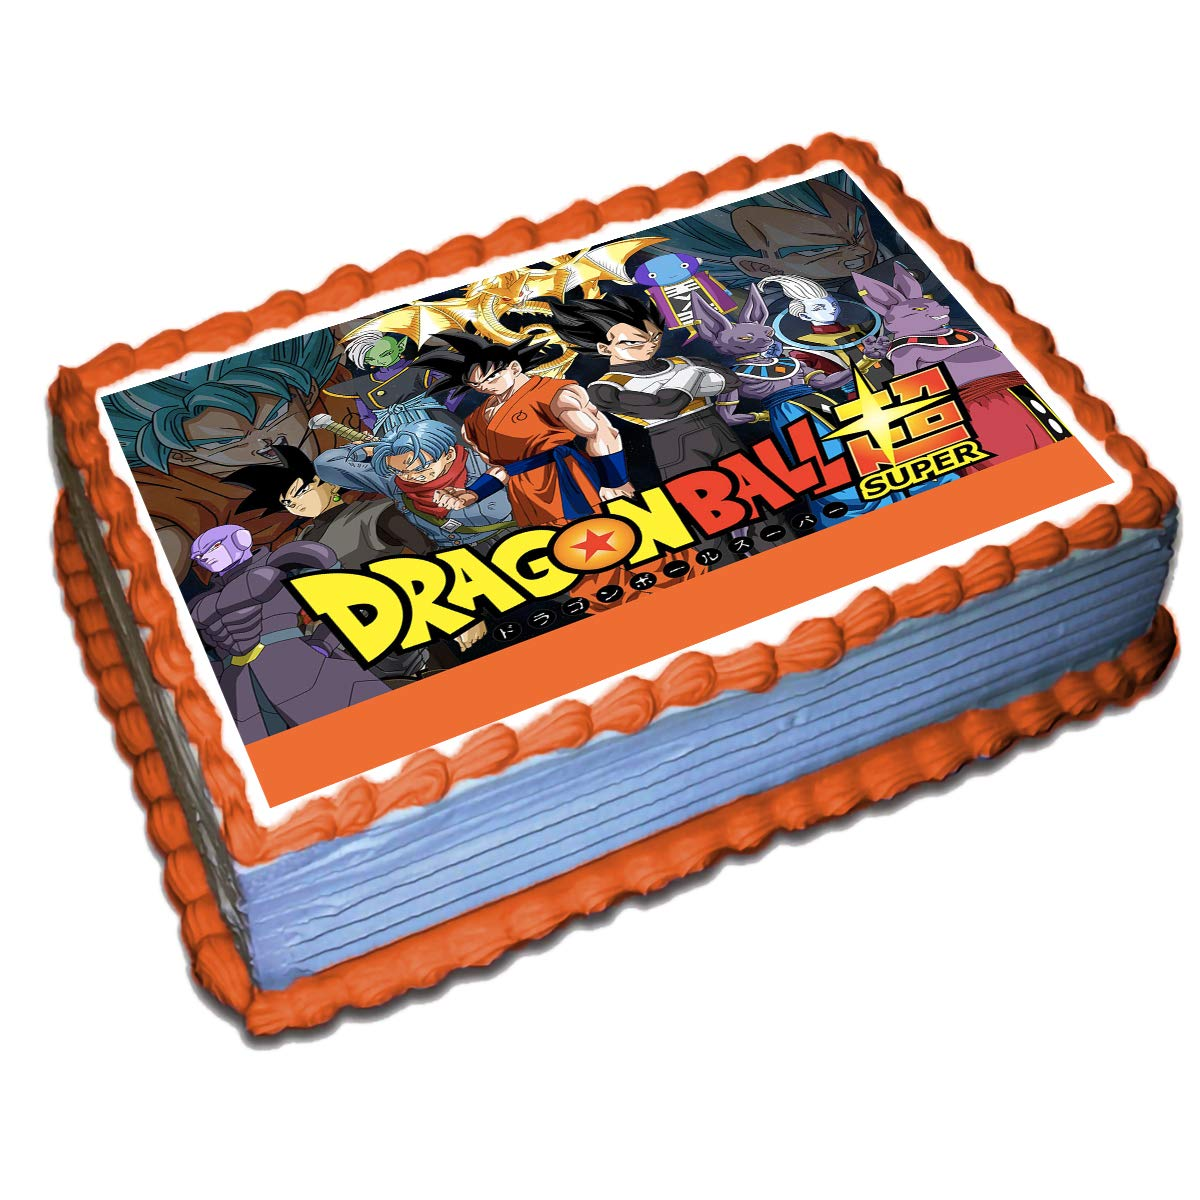 photo about Printable Edible Cake Toppers named Dragon Ball Z Edible Cake Topper Icing Sugar Paper 8.5 x 11.5 Inches Sheet Edible Frosting Image